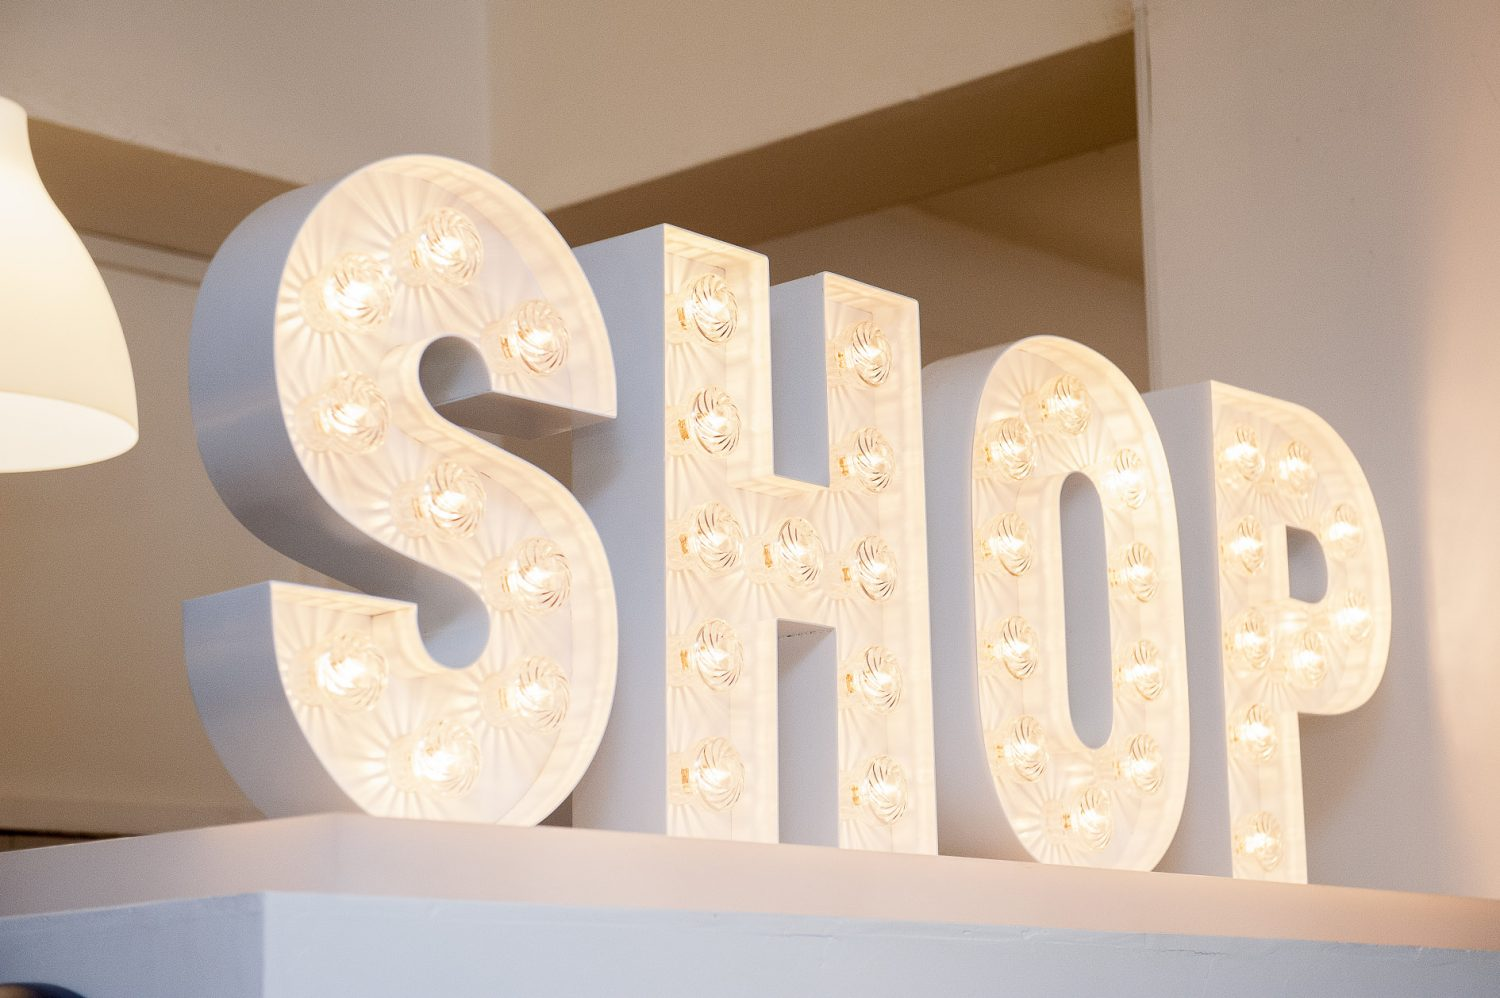 SHOP sells a wonderfully mixed and gloriously displayed array of goods, in a casual perfection of chic bohemian style